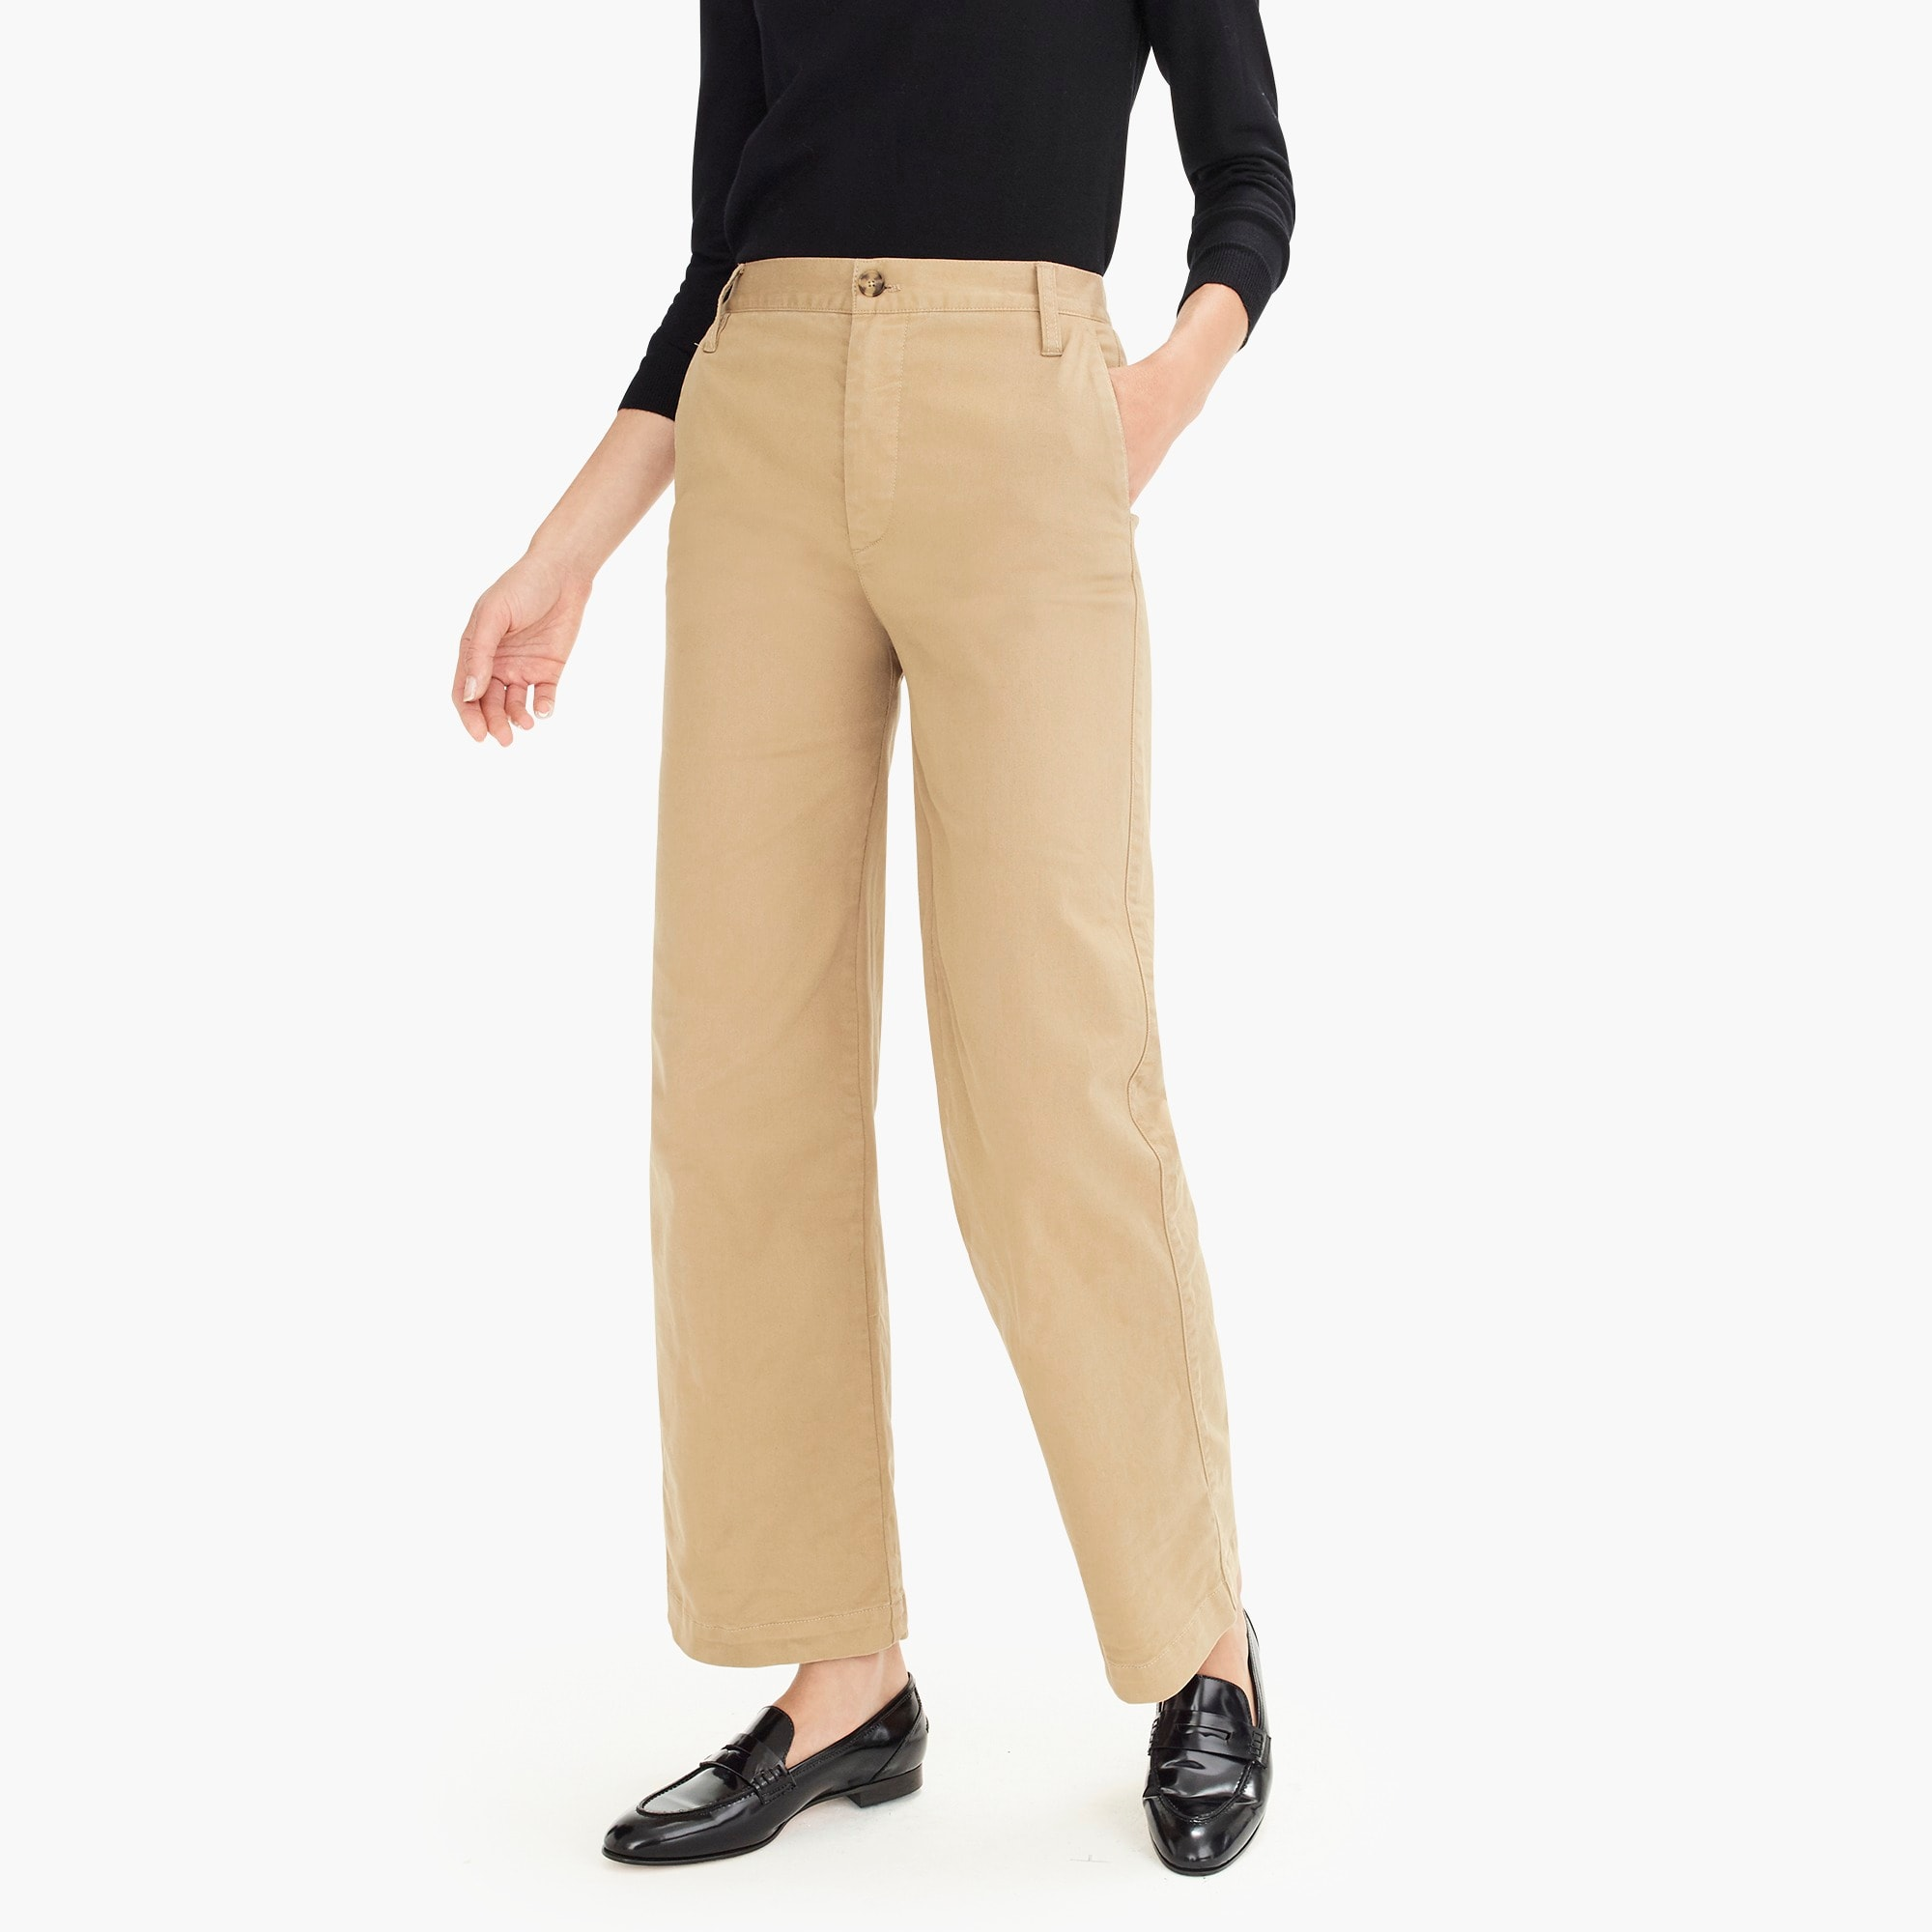 Petite full-length wide-leg chino pant